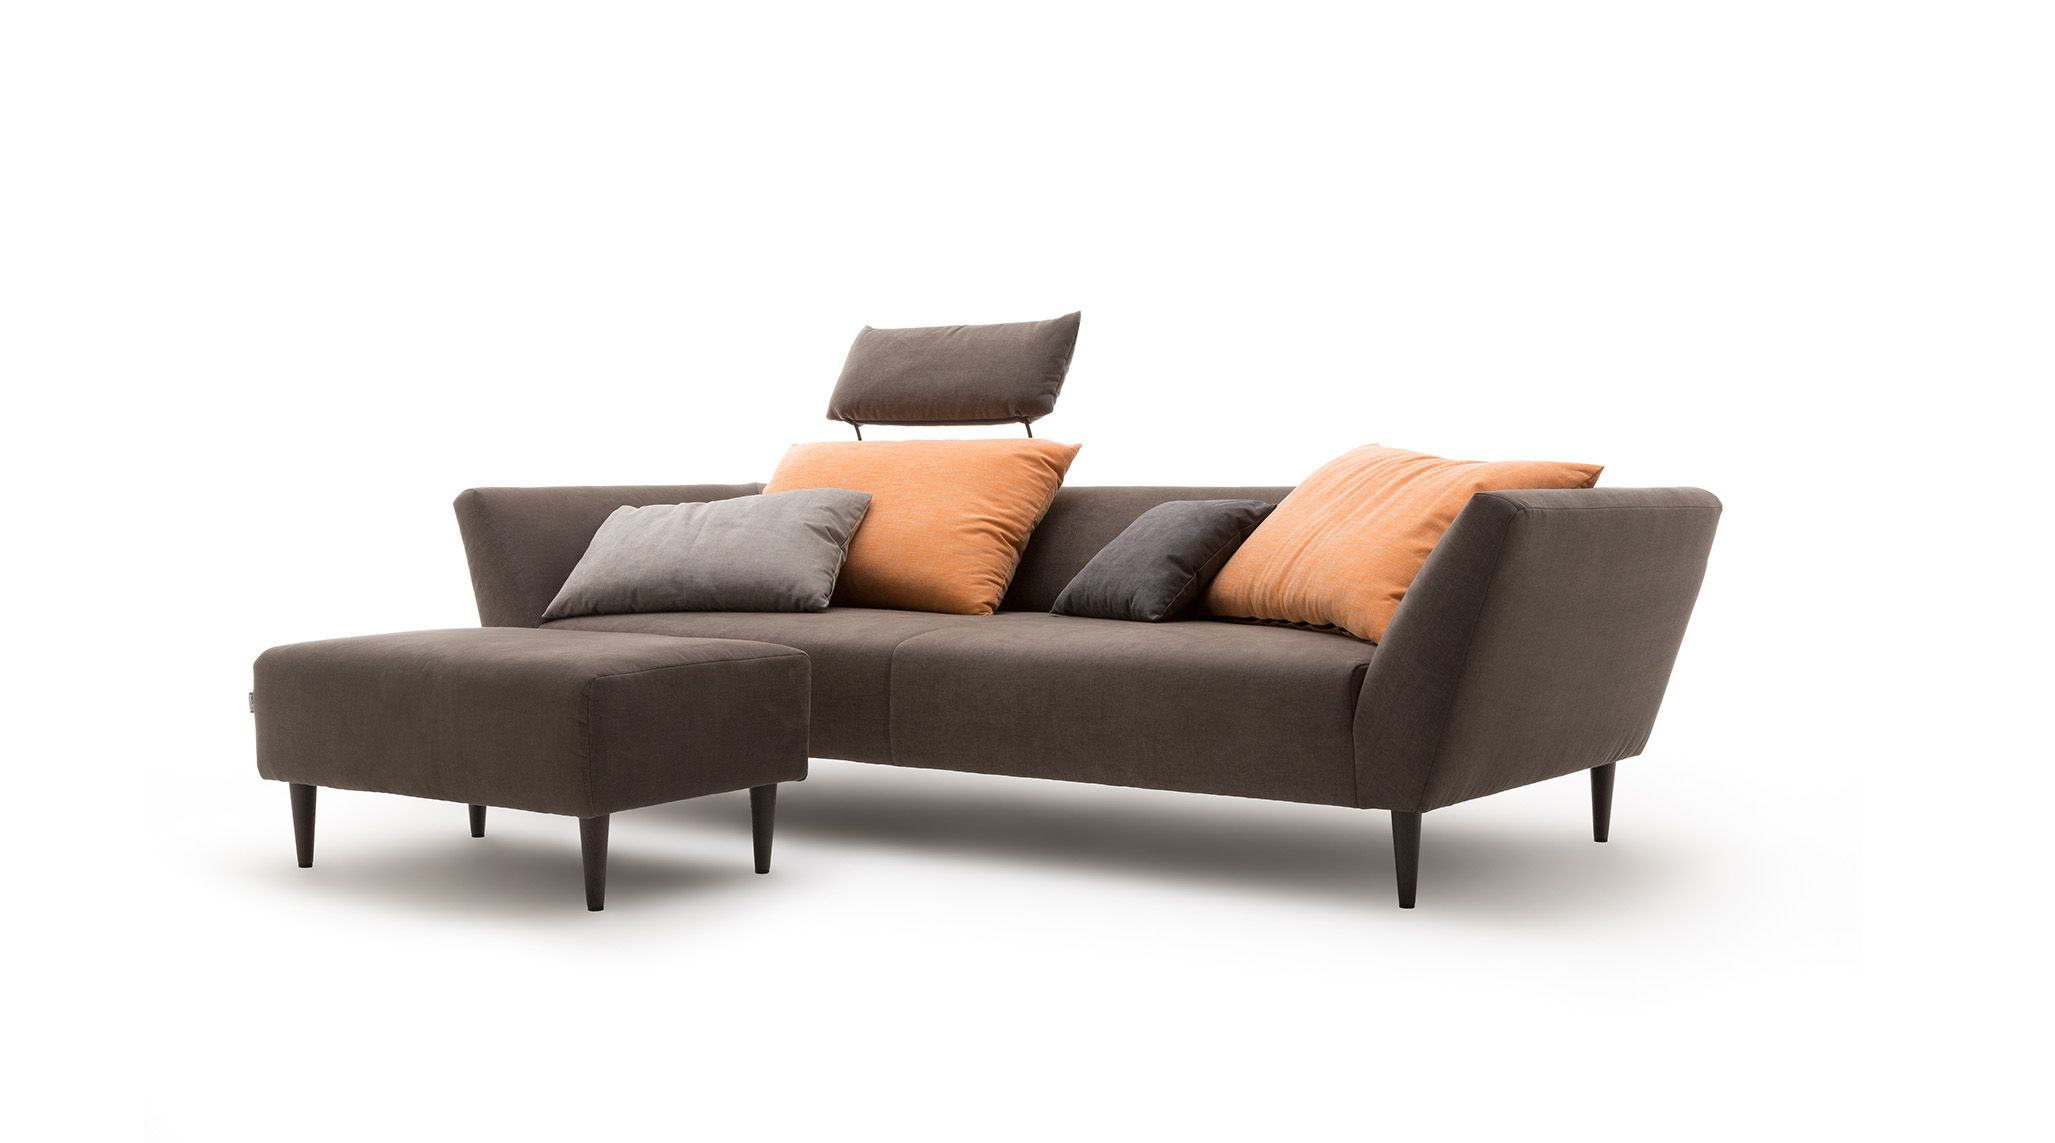 Studio Anise Freistil 176 Sofa modern furniture couch